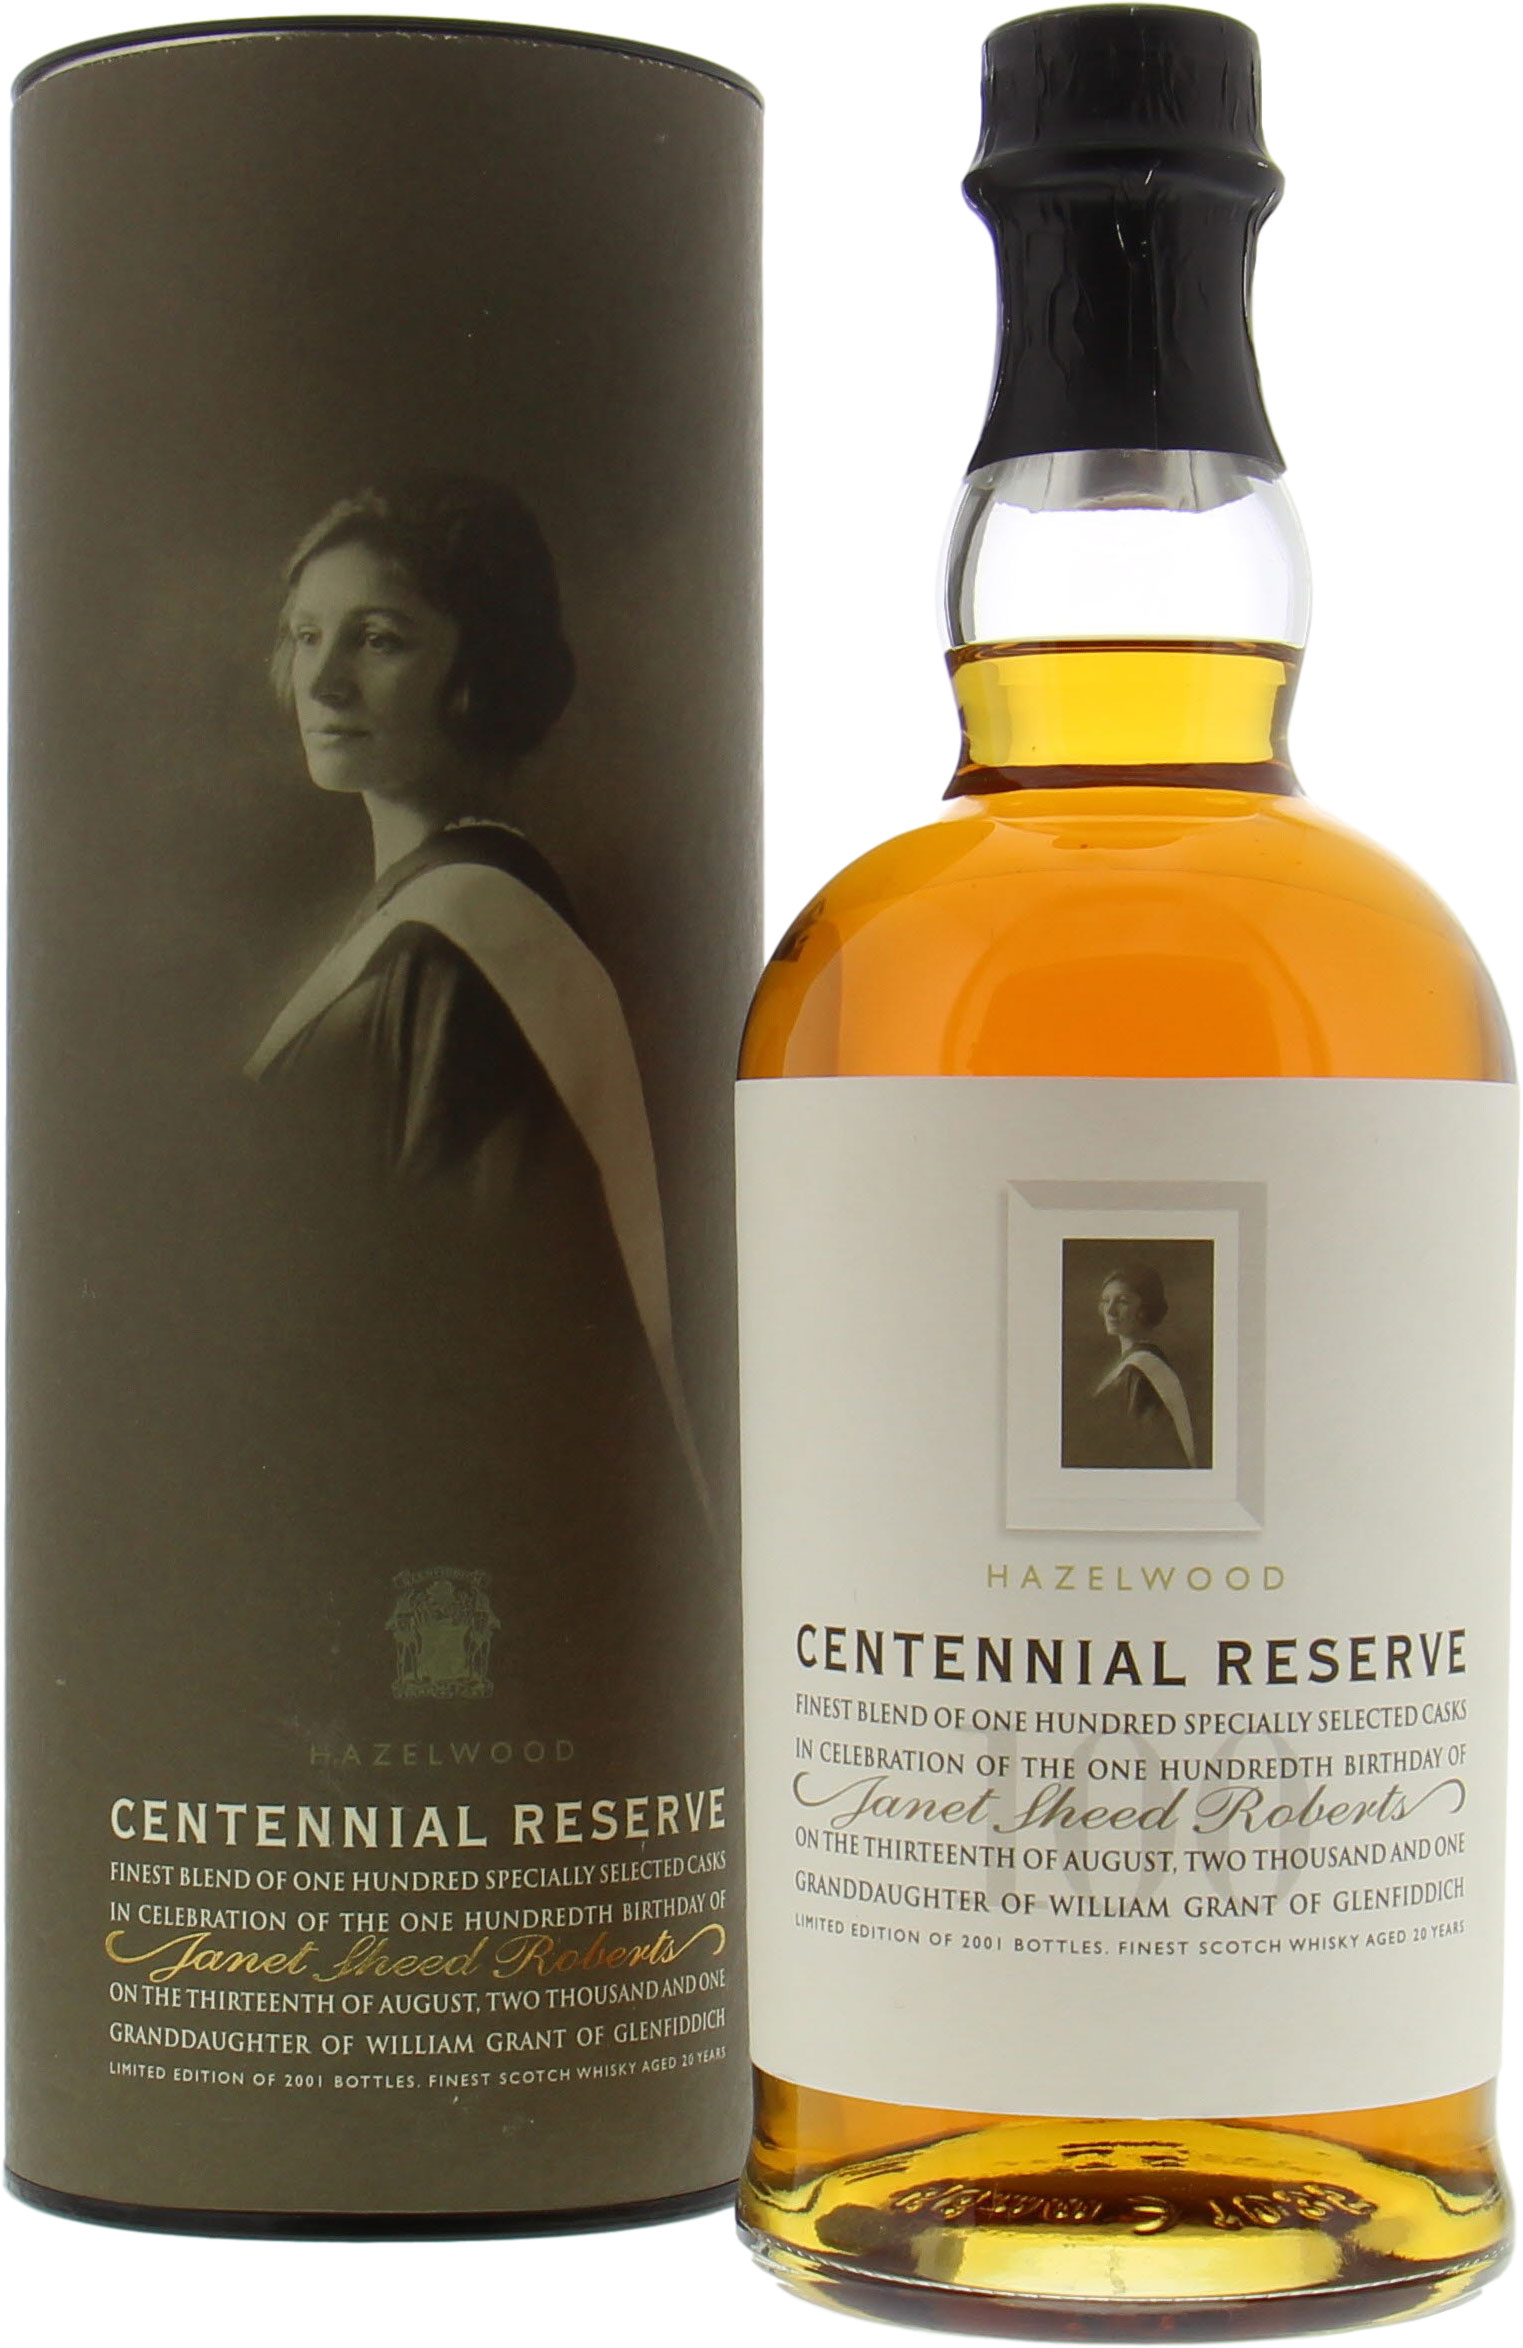 Kininvie - Hazelwood Centennial Reserve 20 Years Old 40% NV